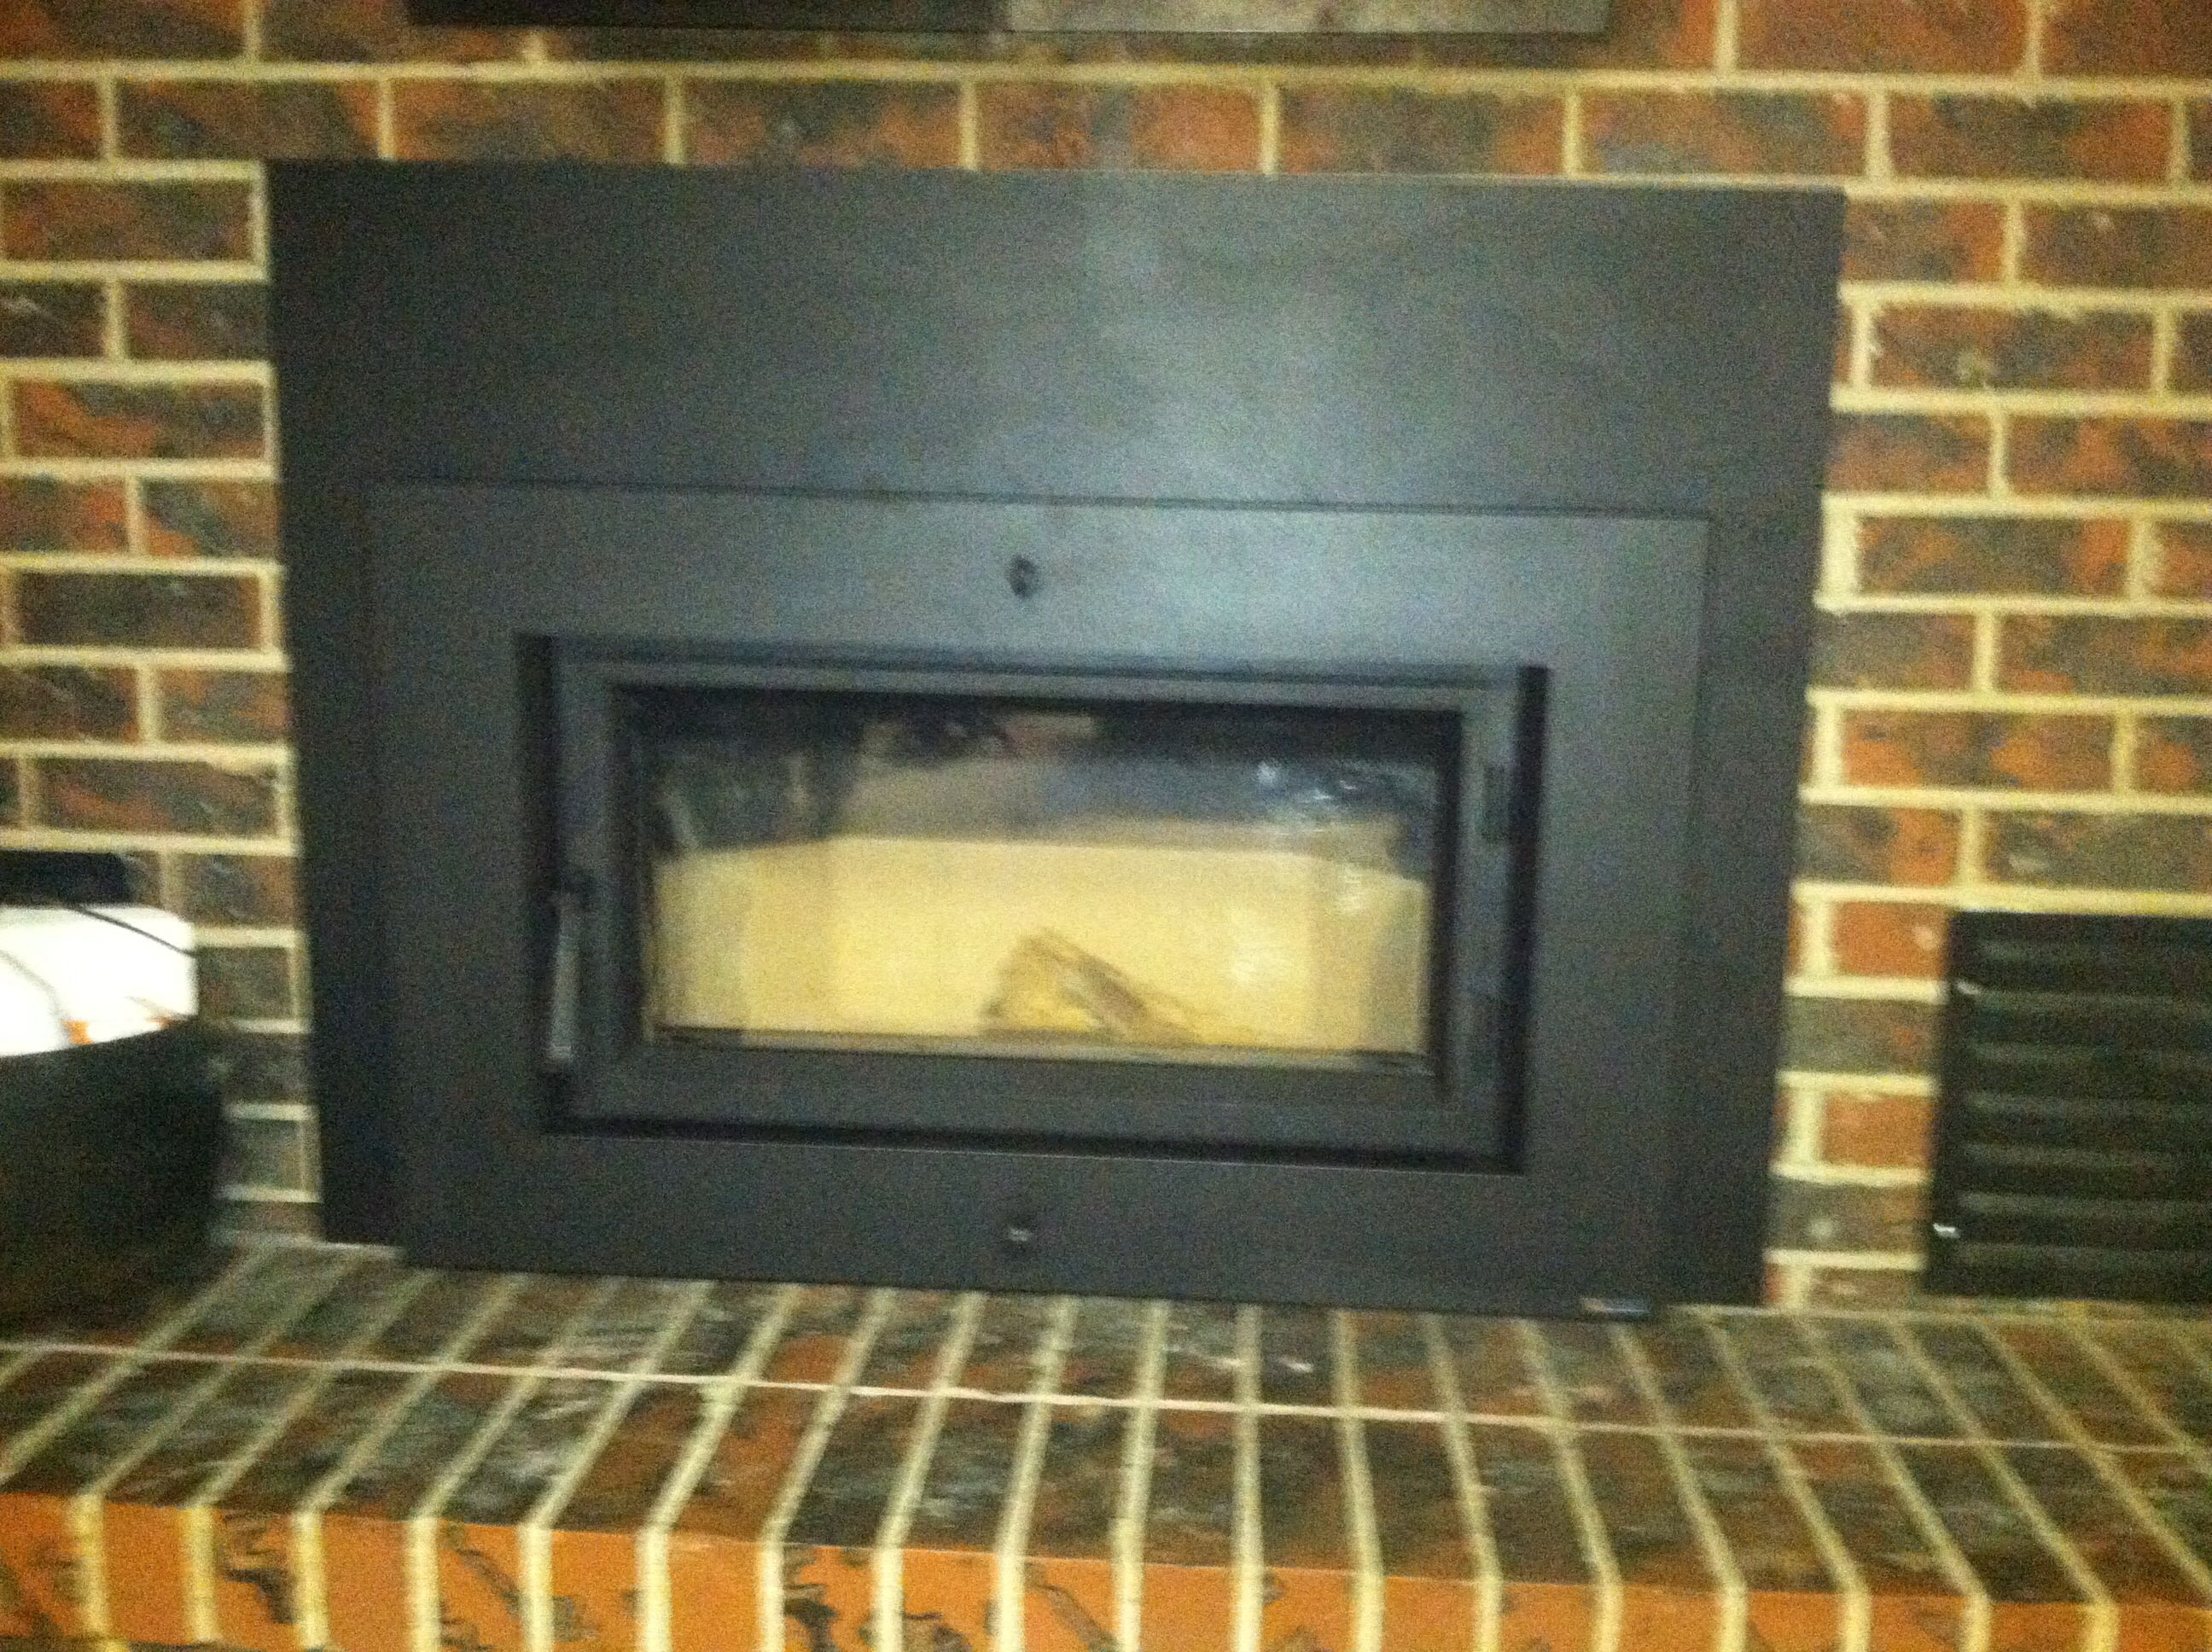 rectangular wood insert by fireplacxtrodinair chimney and stone